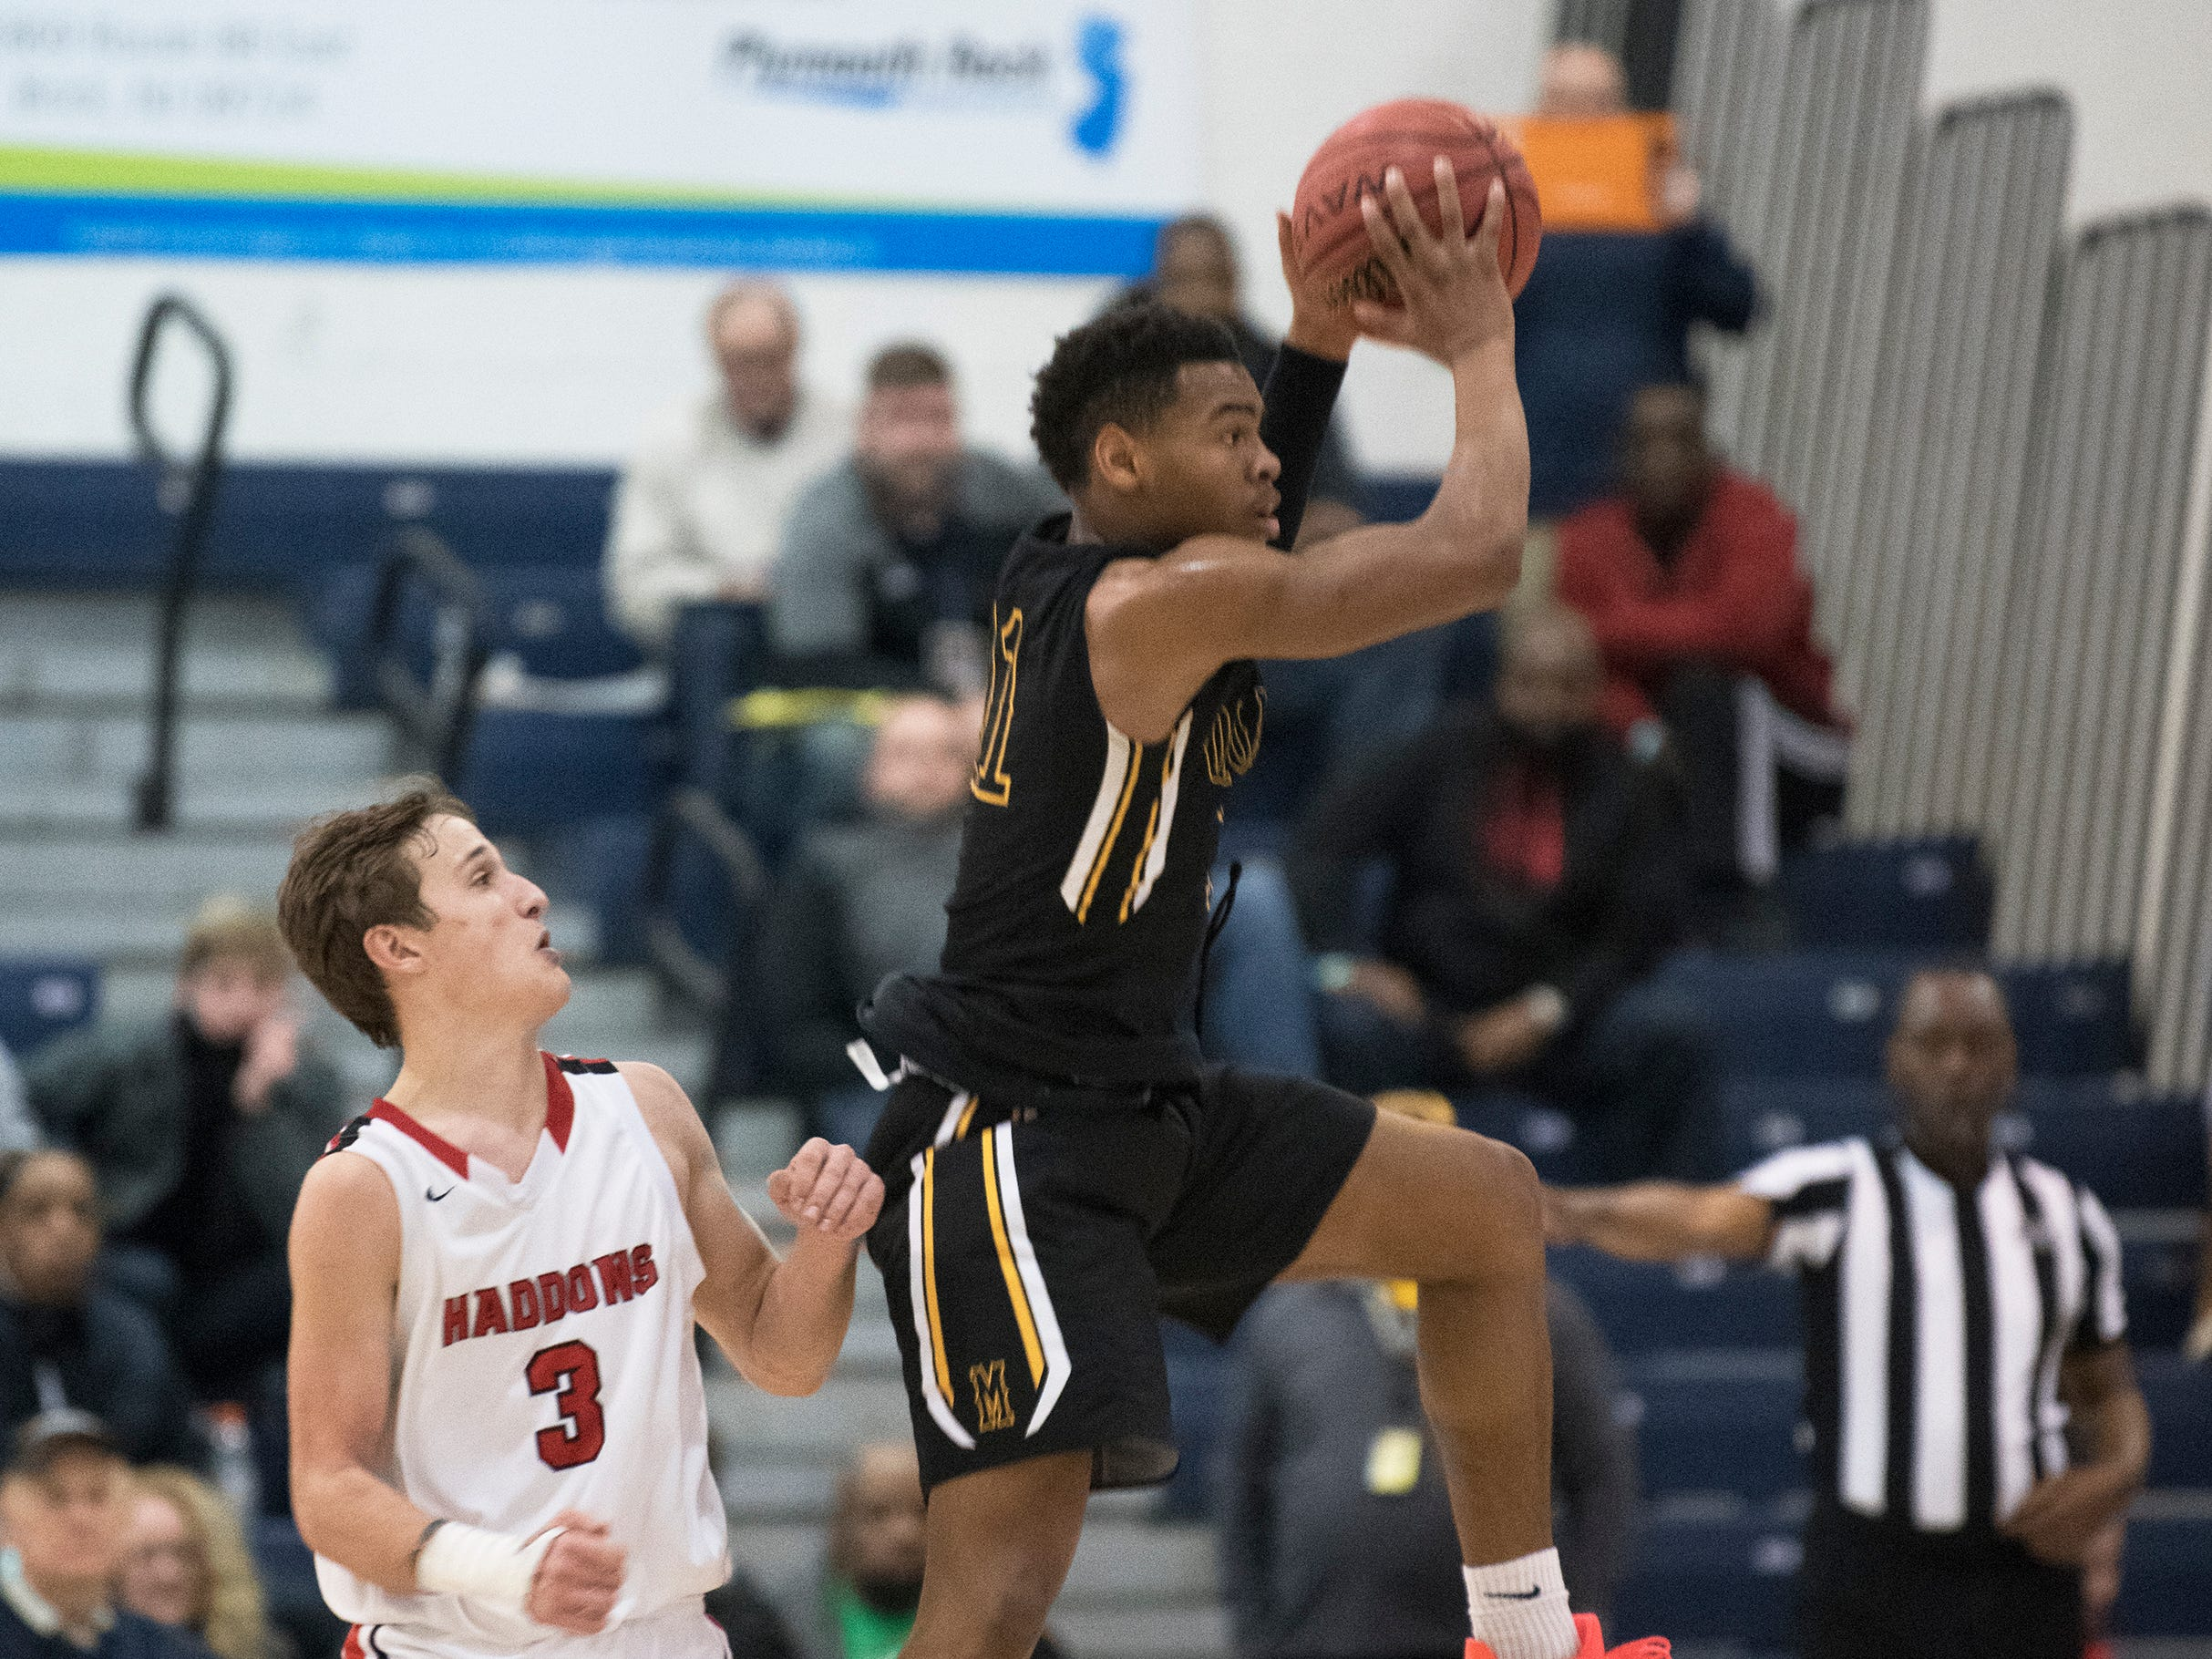 Moorestown's Nick Cartwright-Atkins grabs a loose ball next to Haddonfield's Mike DePersia during the 3rd quarter of the boys basketball Tournament of Champions quarterfinal game played at Toms River North High School on Wednesday, March 13, 2019.    Moorestown defeated Haddonfield, 60-59.